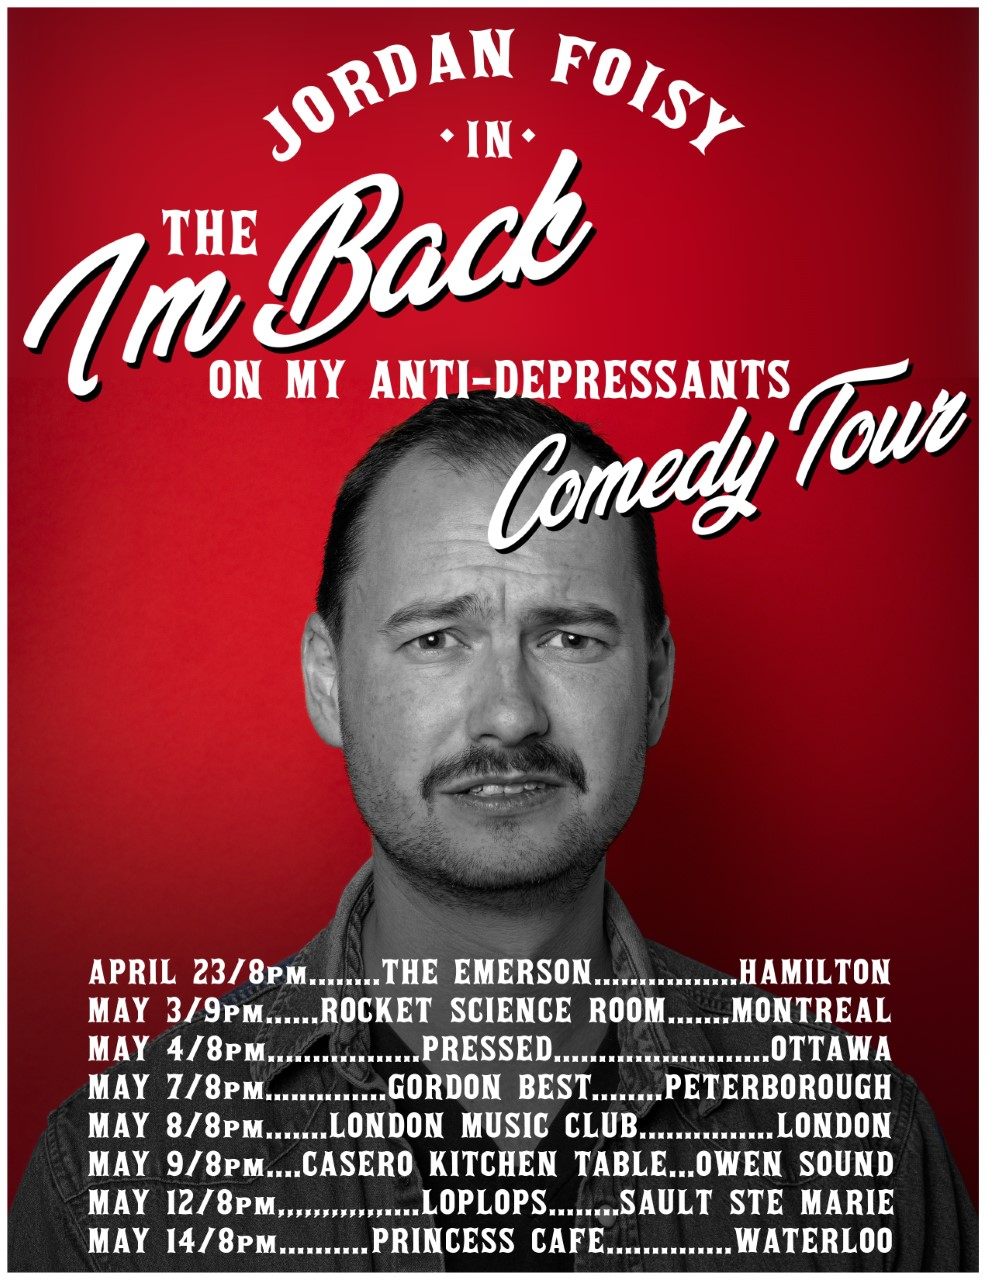 Jordan Foisy in the I'm Back On My Anti-Depressants Comedy Tour @ LMC!!!